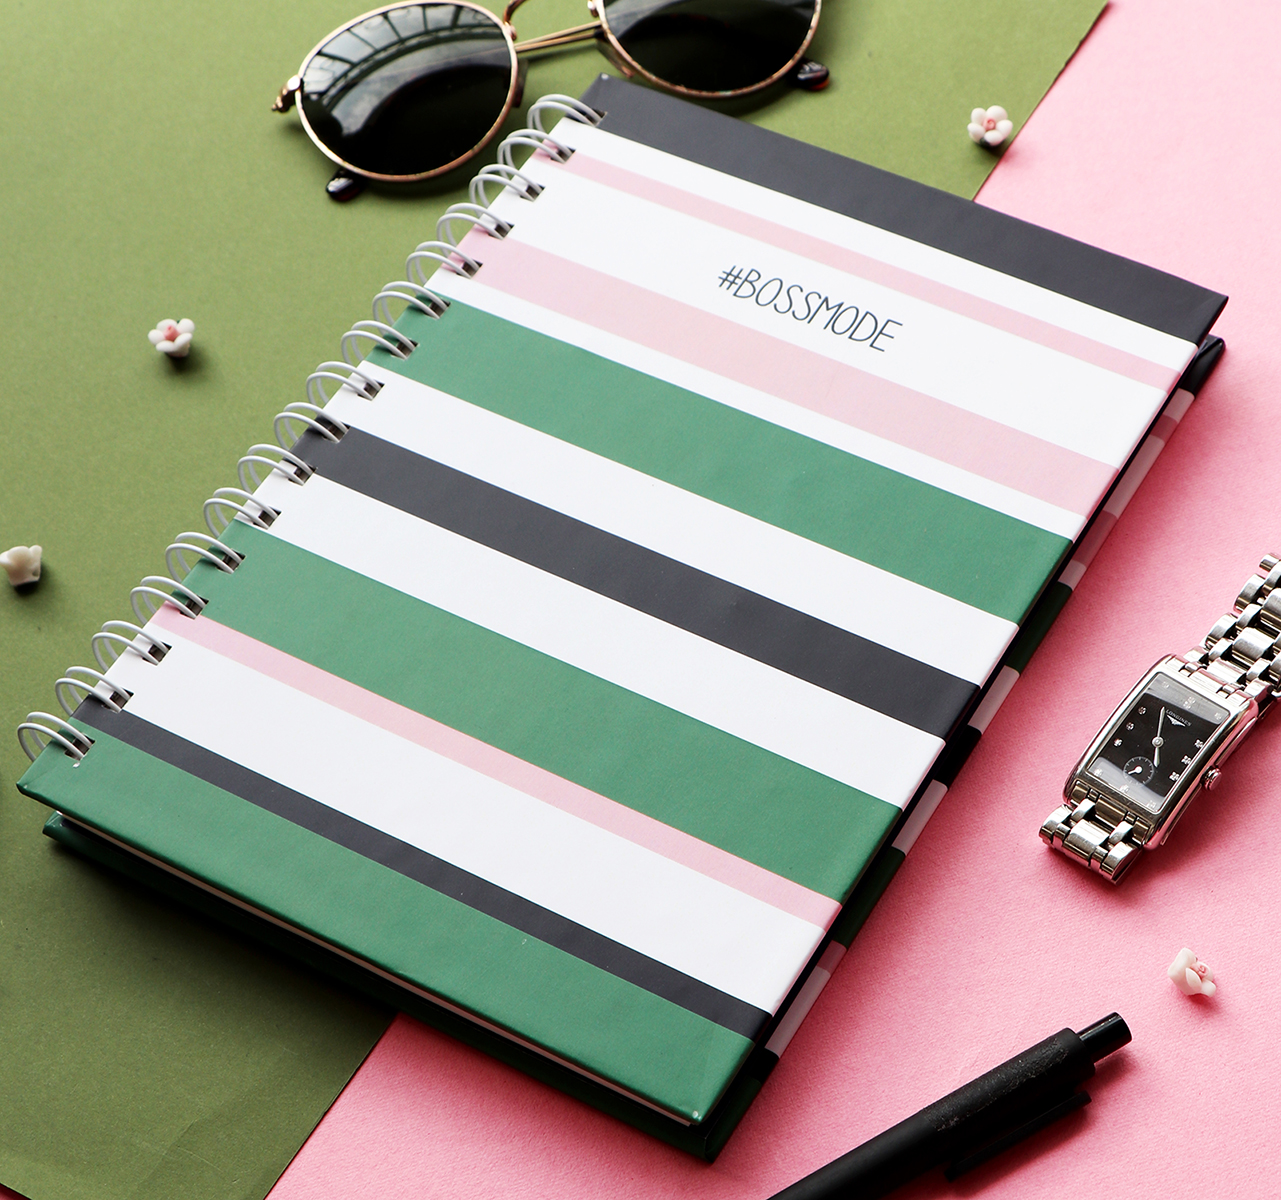 Bossmode Spiralbound Notebook | The Craftables Stationery